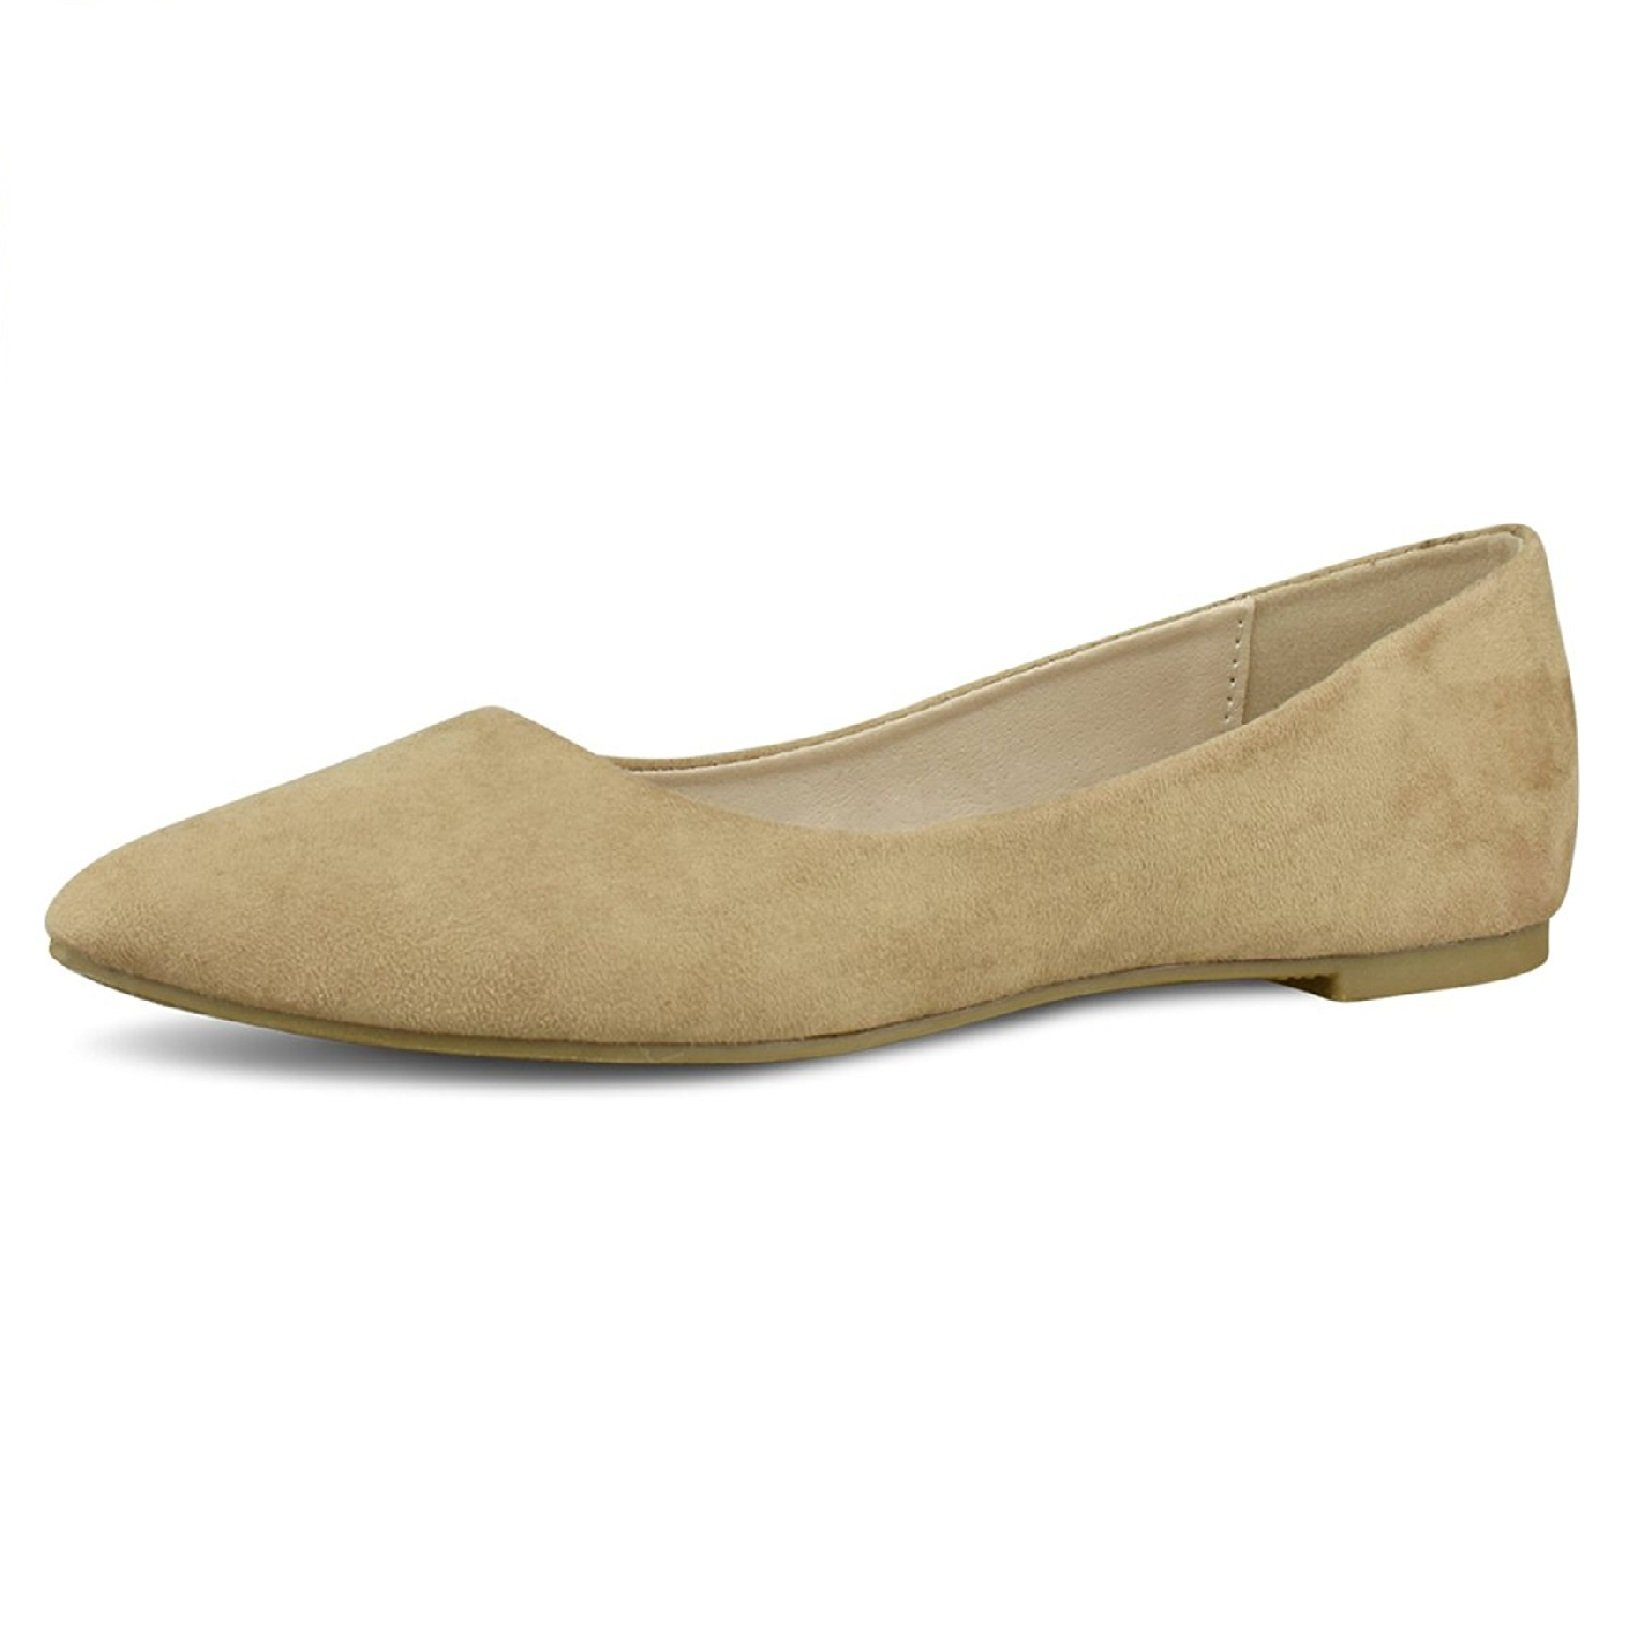 Women's Ballet Flats Pointed Toe Classic Slip On Loafer Shoes Suede Summer Wedding Shoes Taupe 7